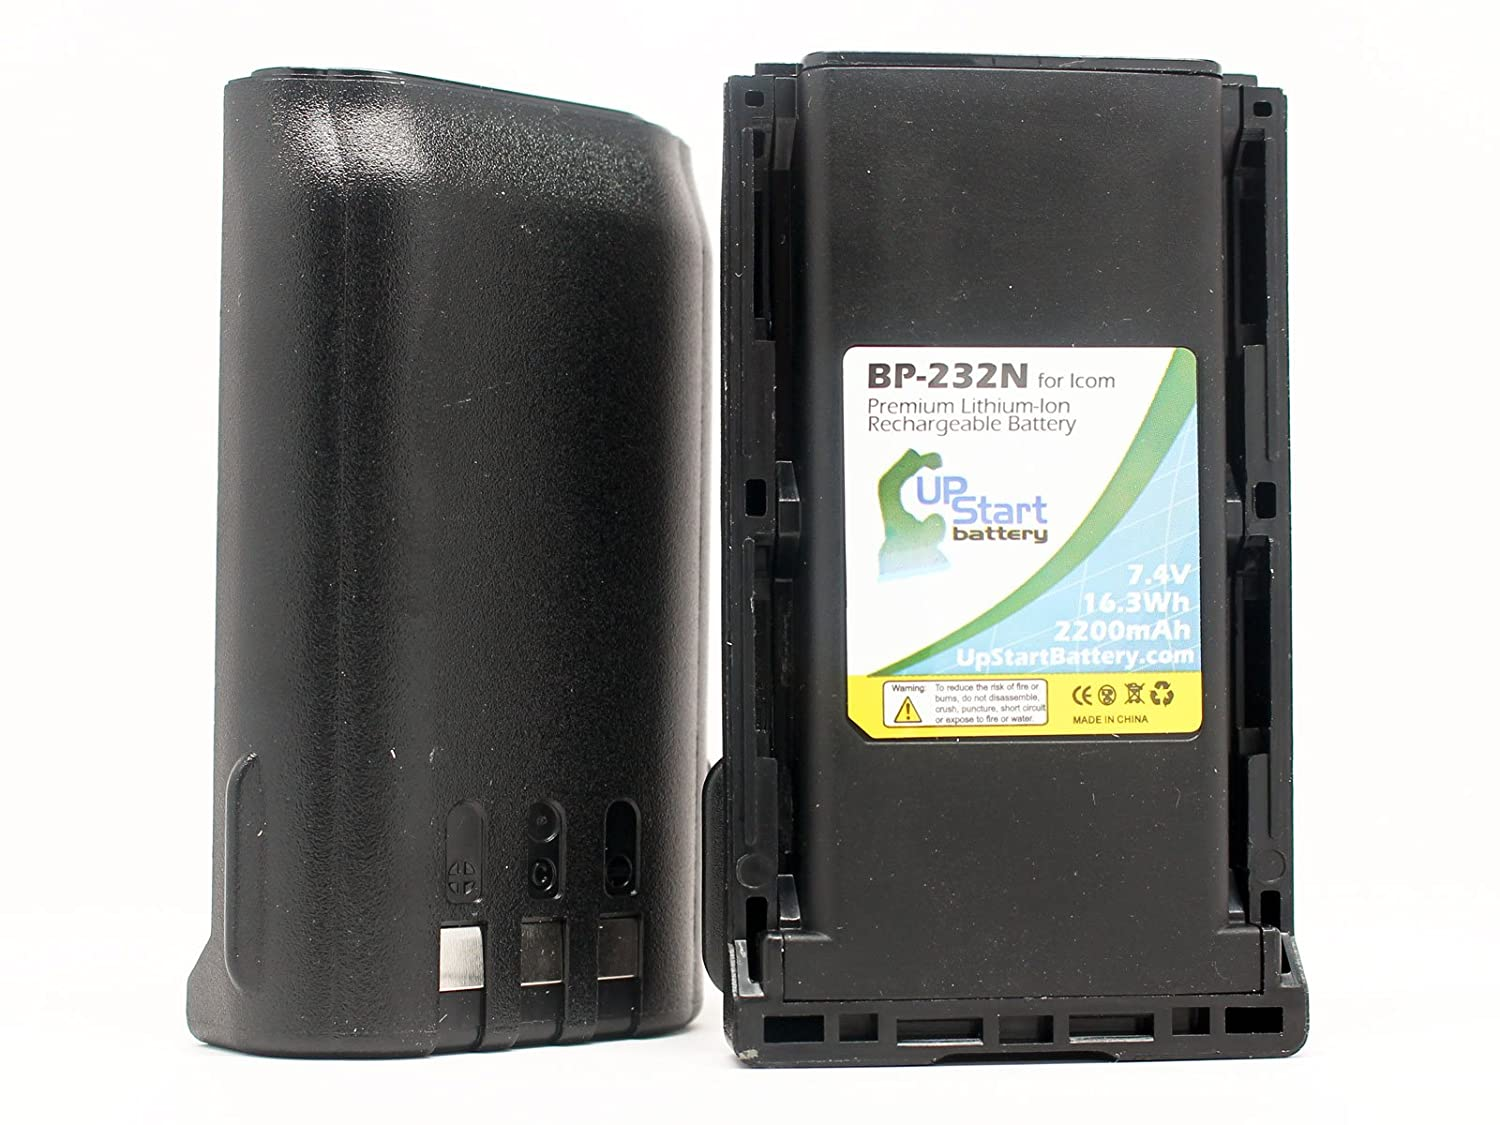 IC-F43GT 7.4V 2200mAh BP-231 BP-231N Battery For ICOM IC-F43 IC-F43G IC-F43GS